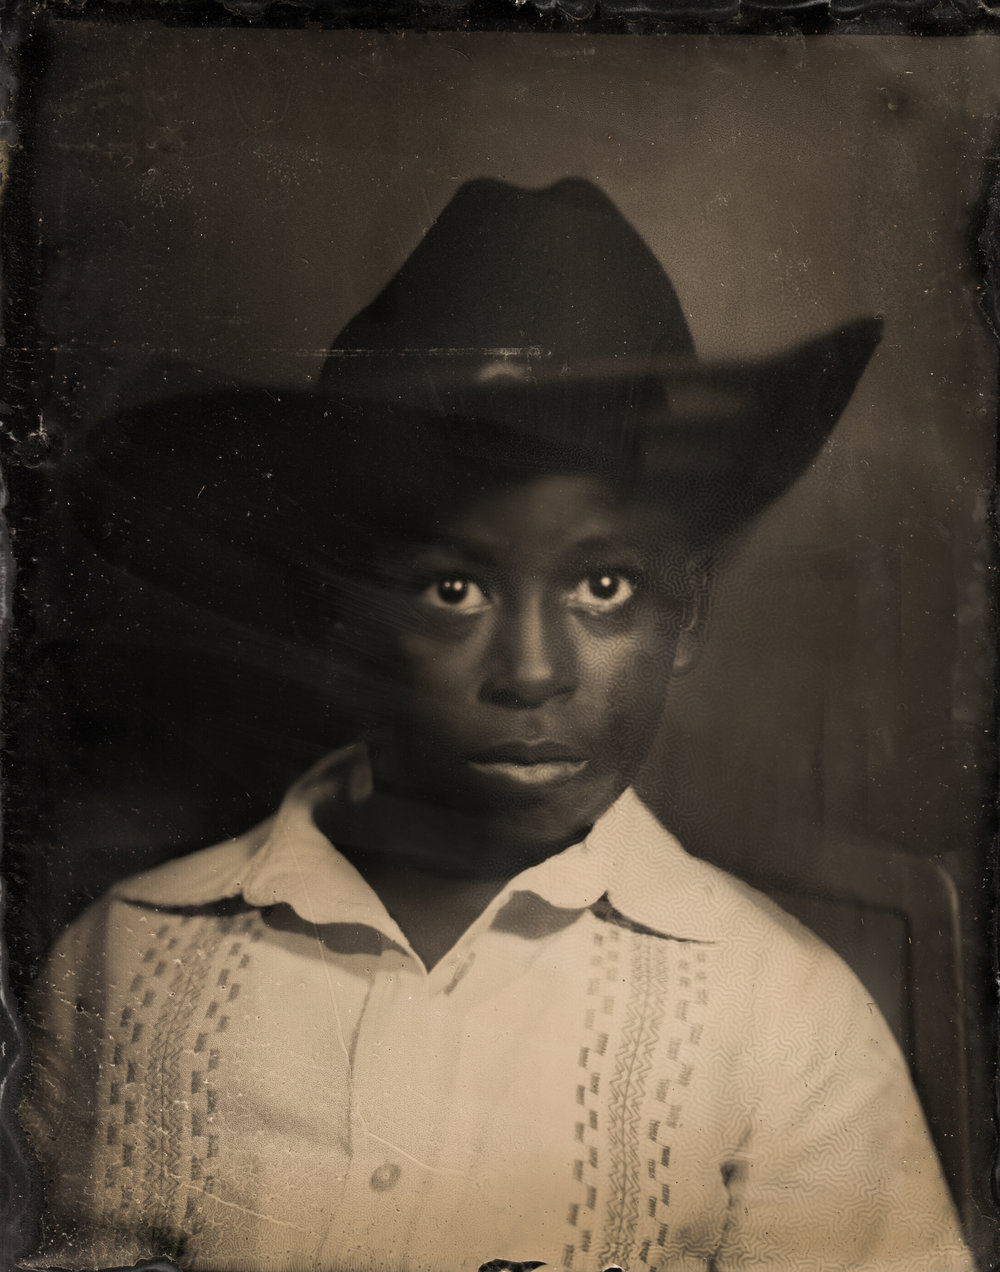 Michigan Tintype photographer